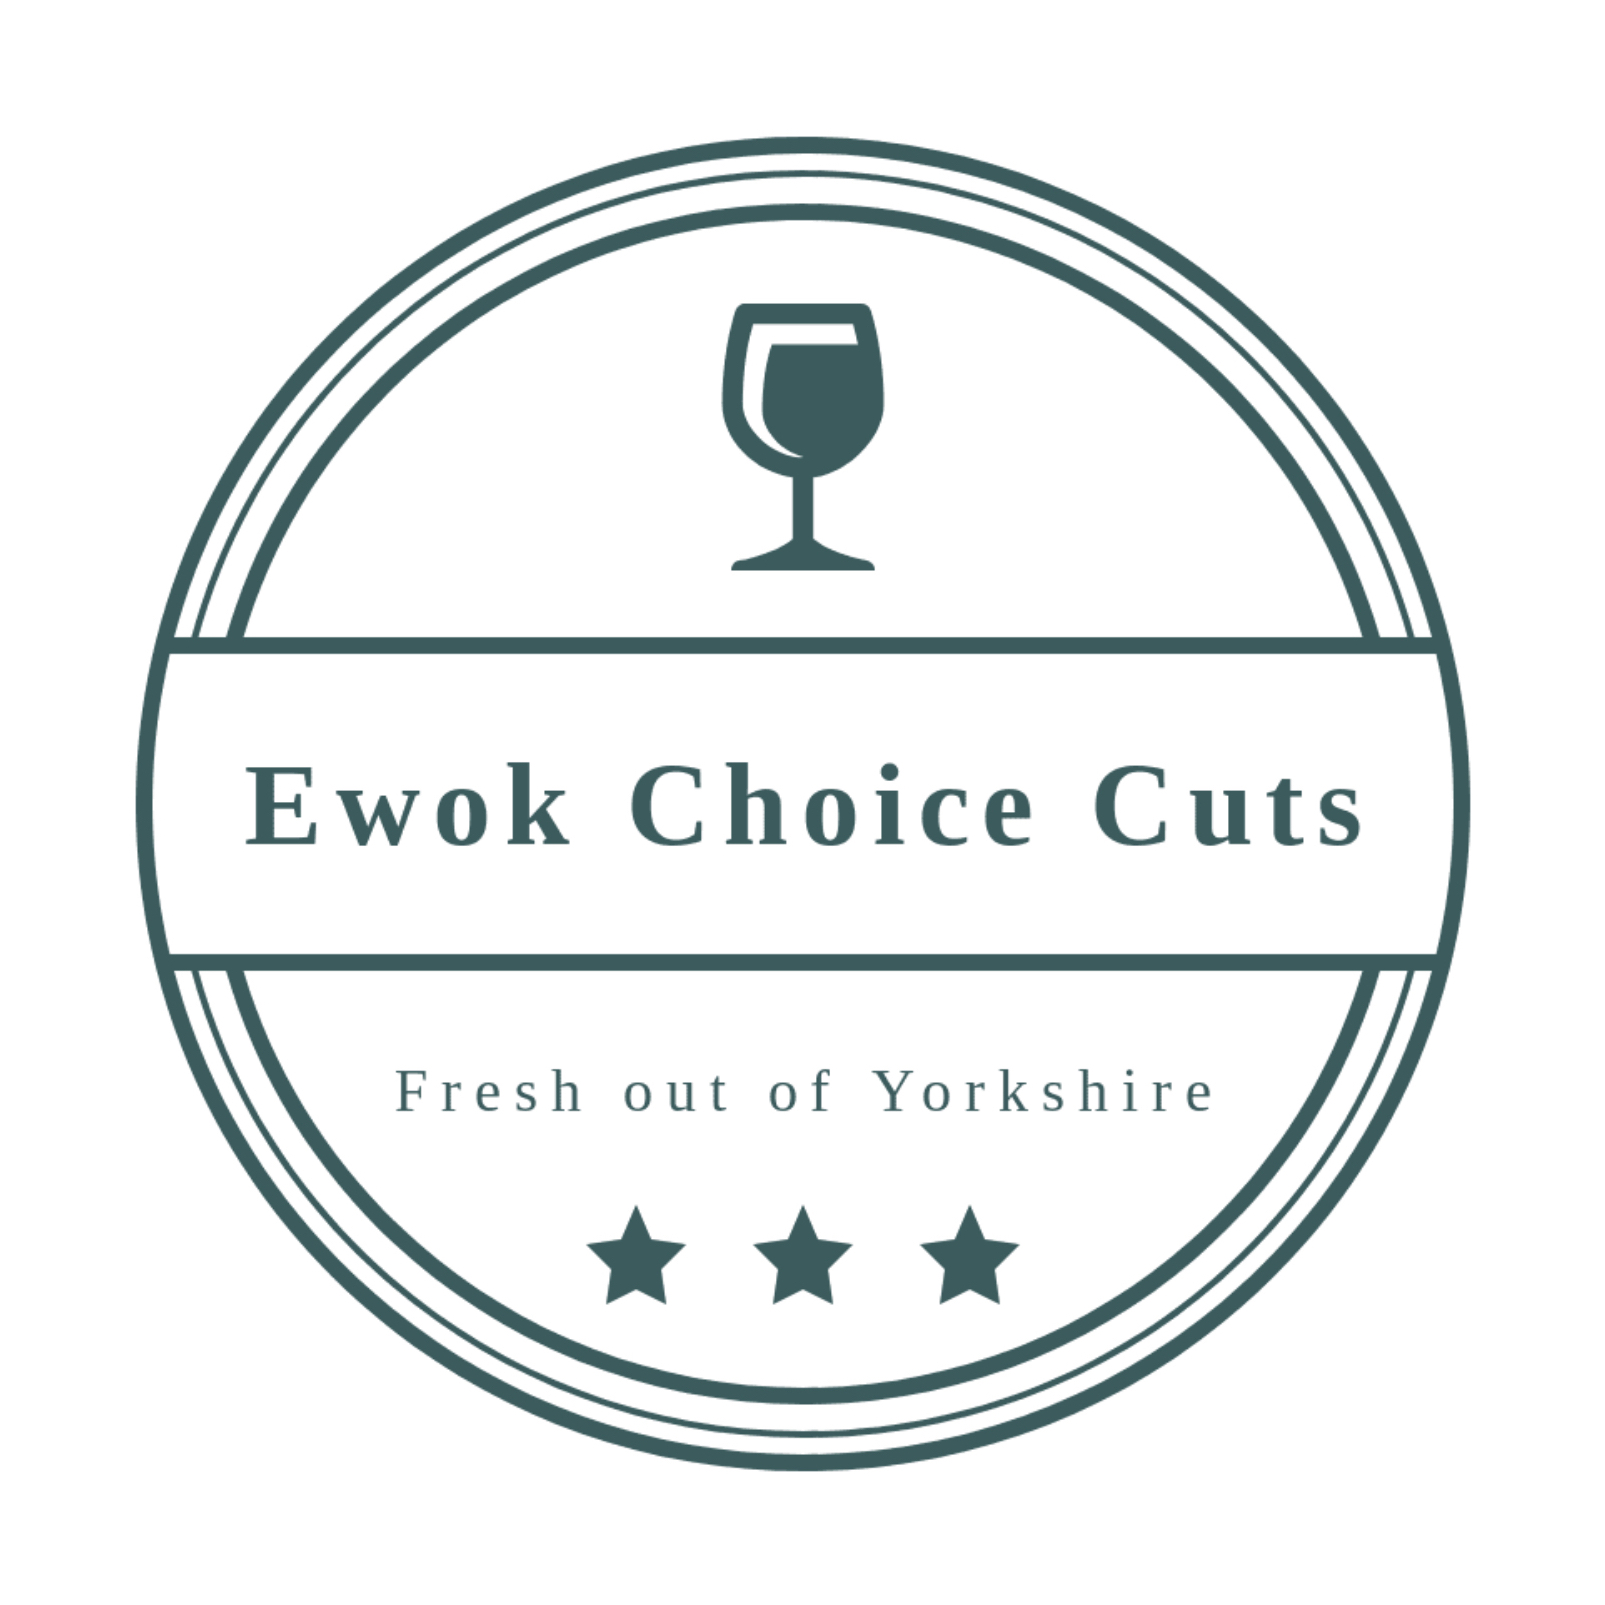 Image of Ewok Choice Cuts